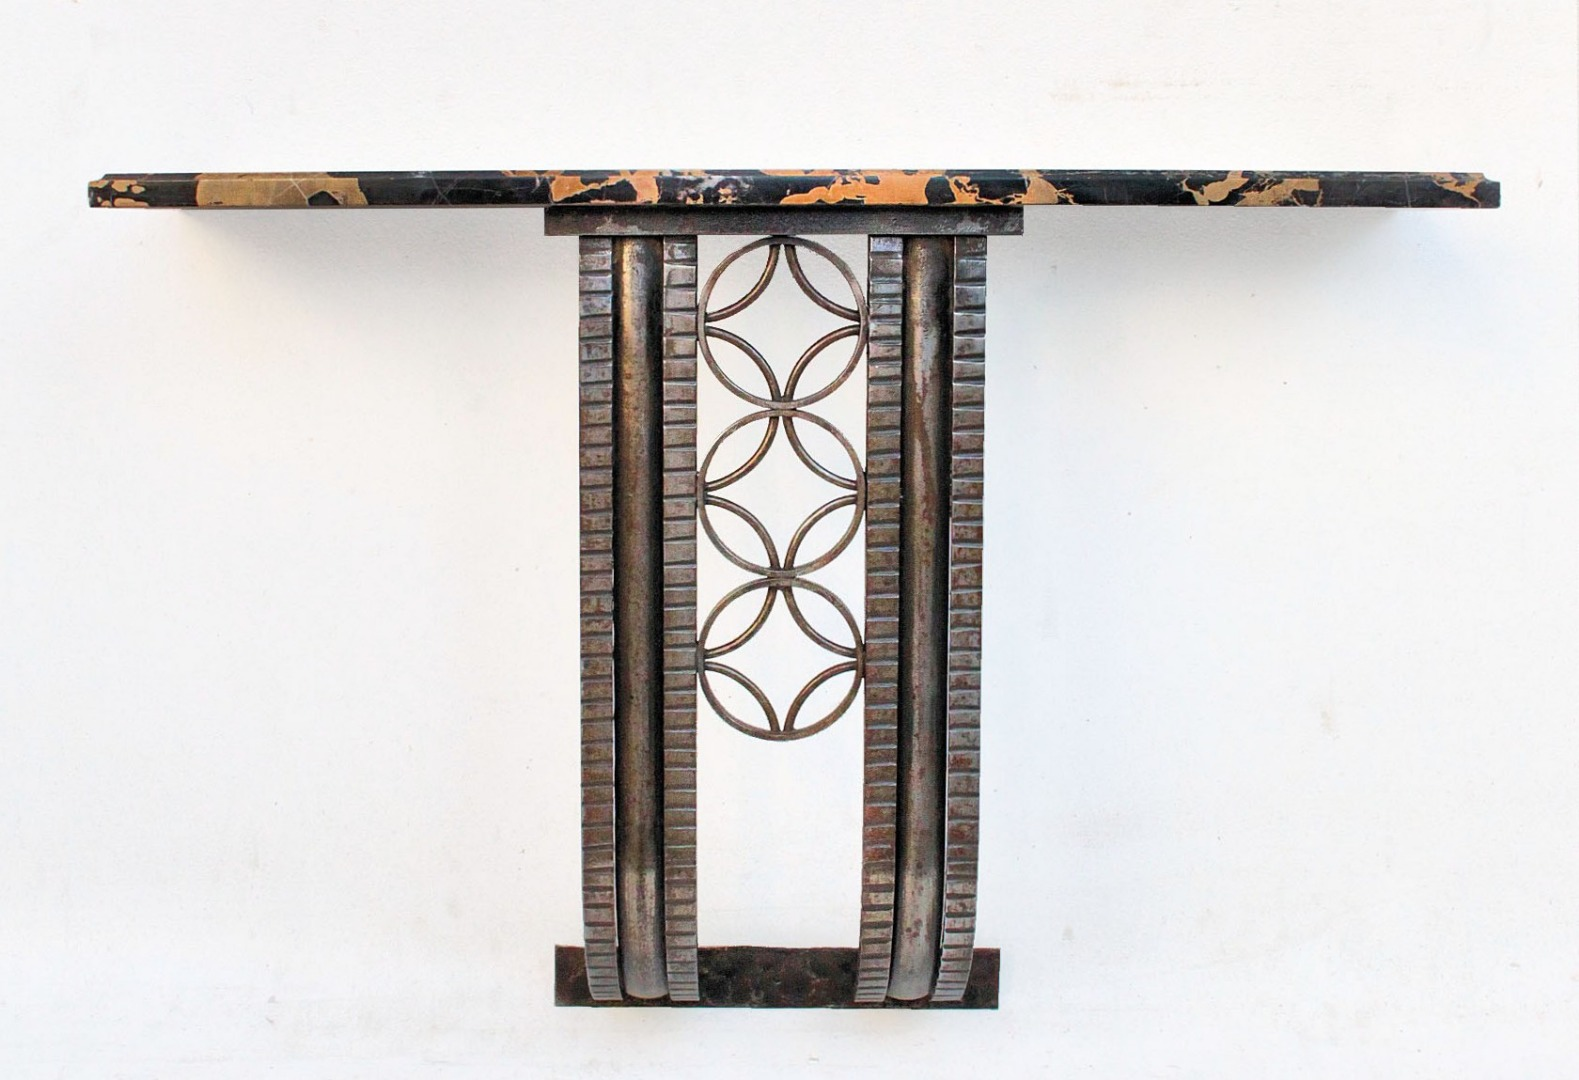 ART DECO PERIOD WALL SHELF BY Michel Zadounaisky  (1903-1983)